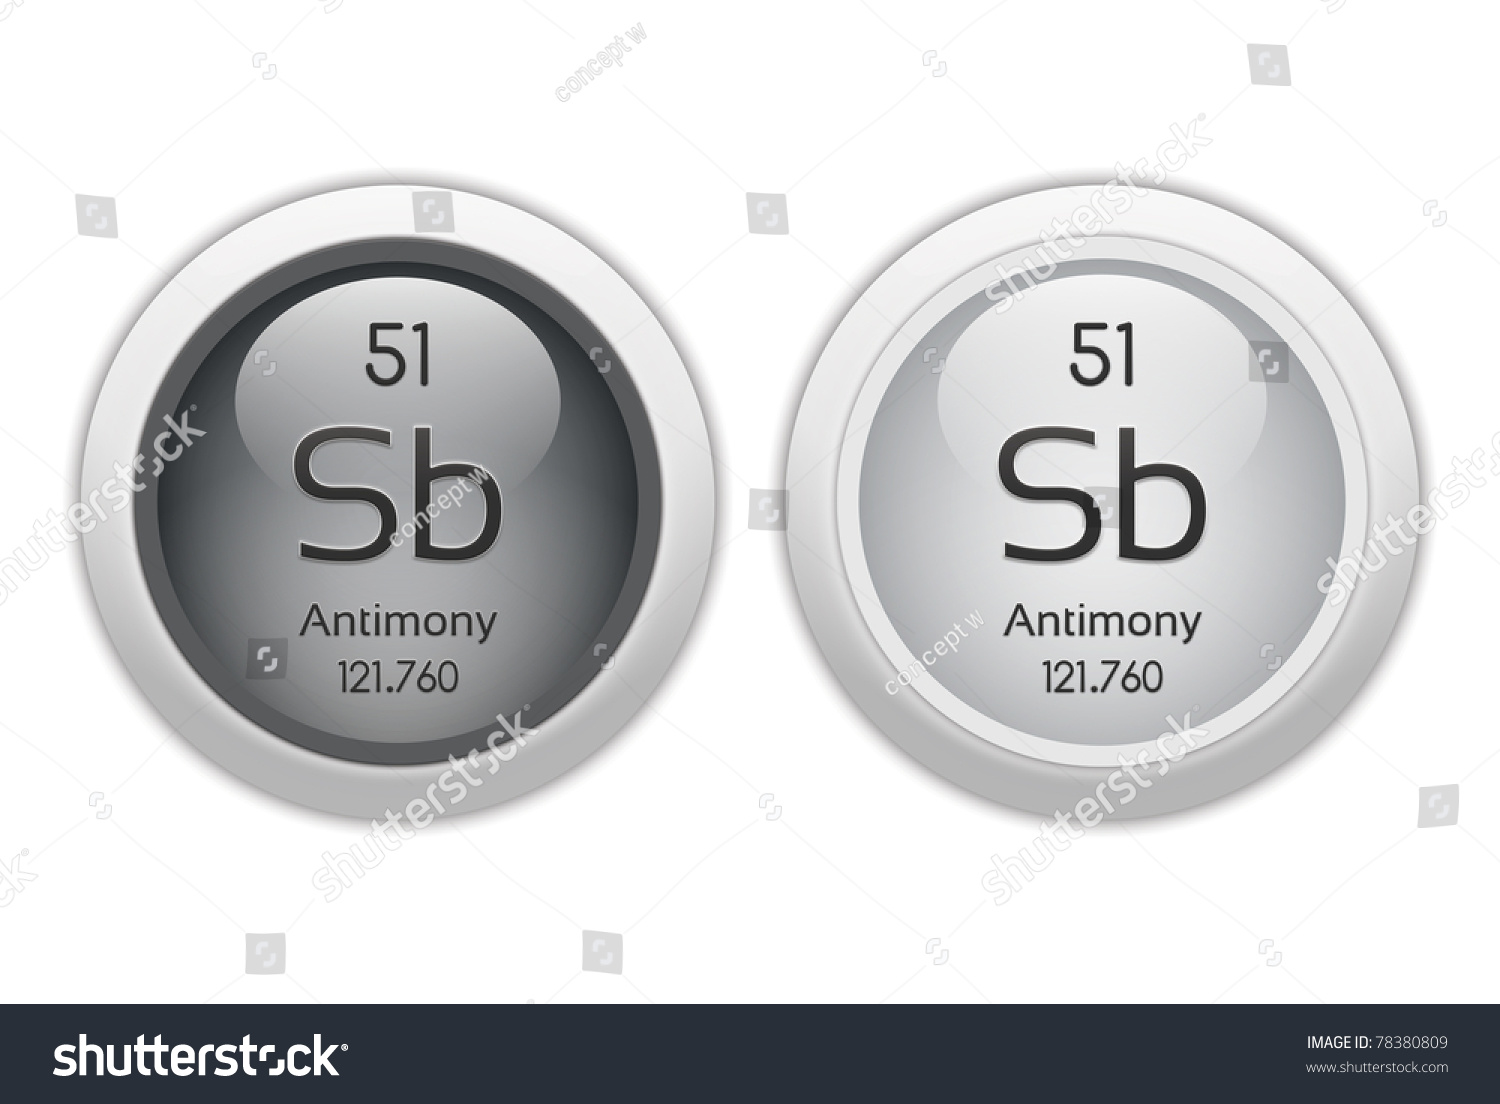 Antimony Two Web Buttons Chemical Element Stock Illustration